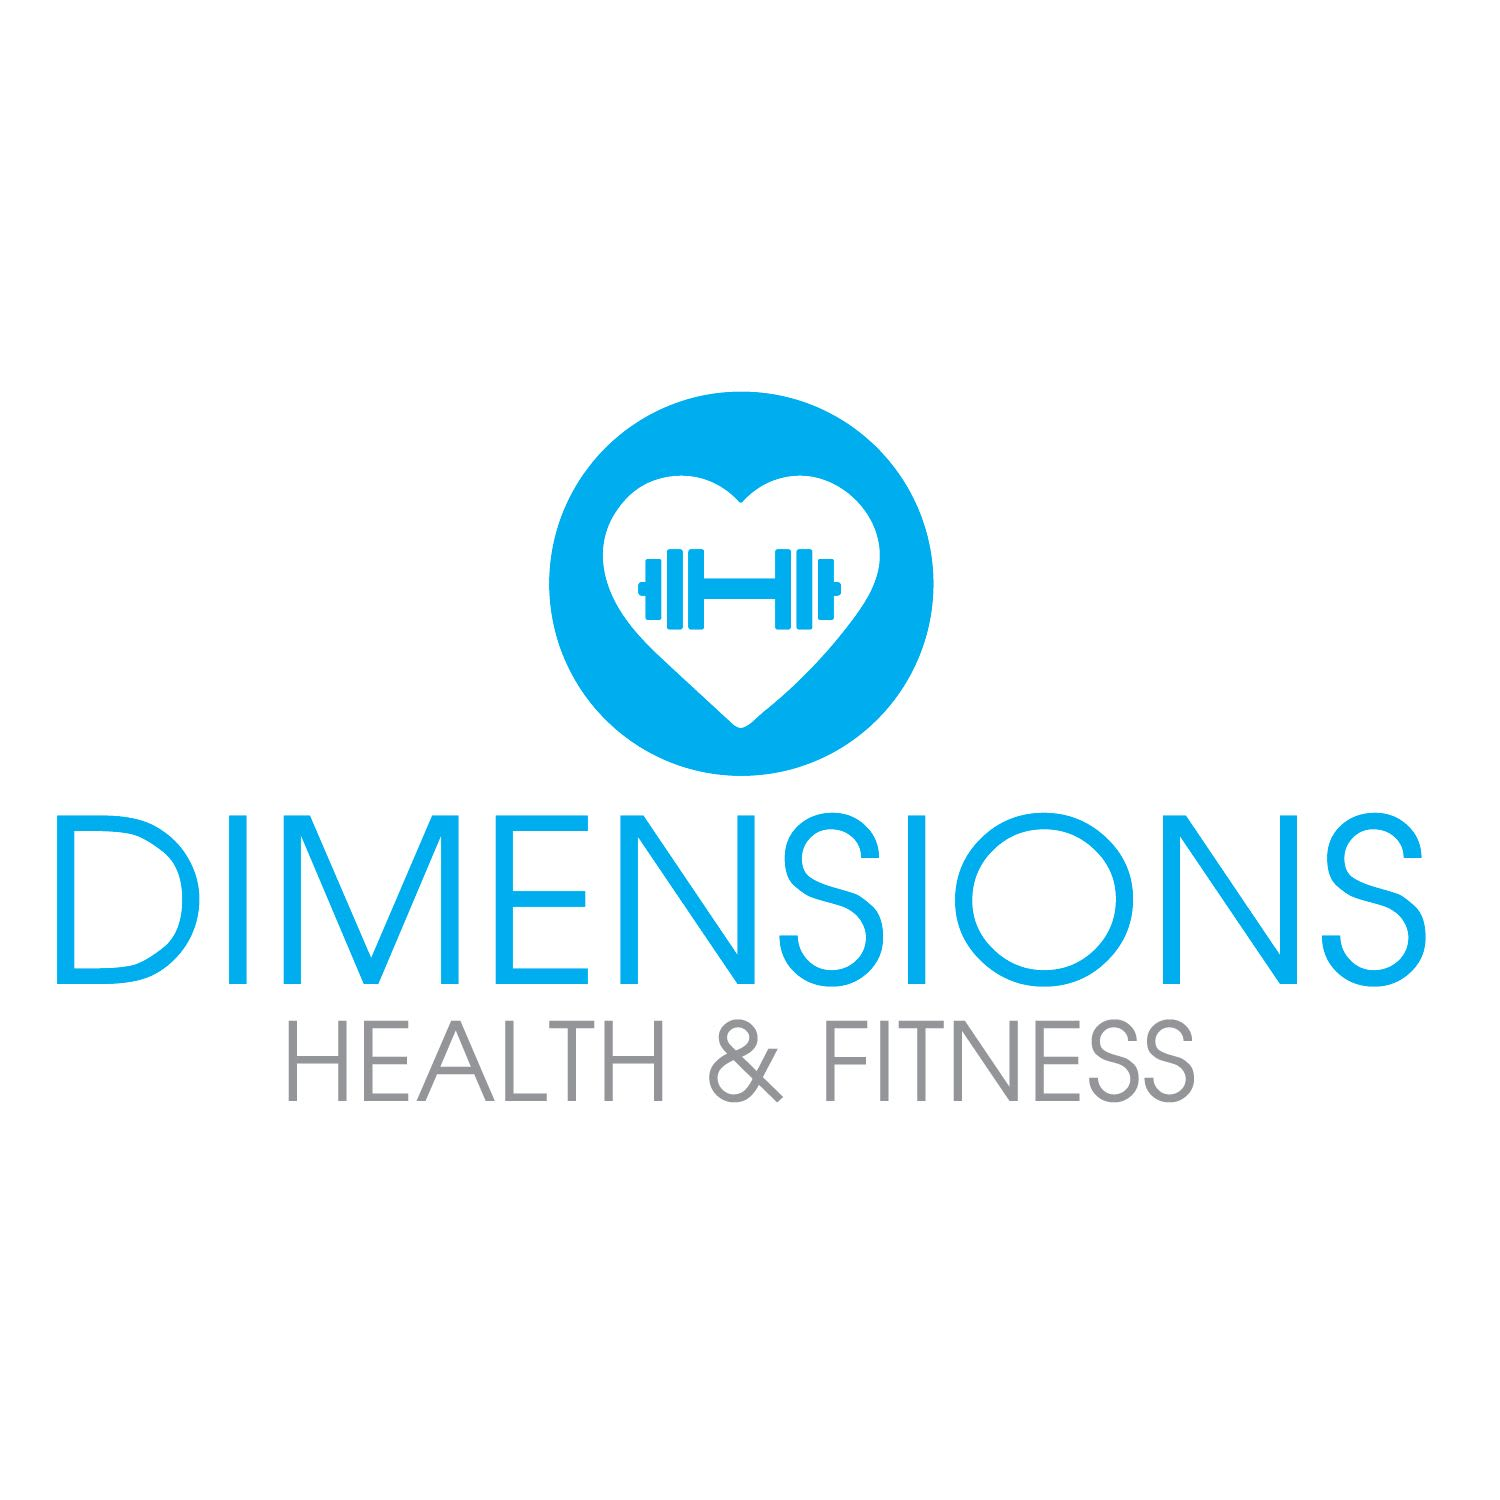 Link to Dimensions Wellness at Discovery Village At Sandhill in Columbia, South Carolina